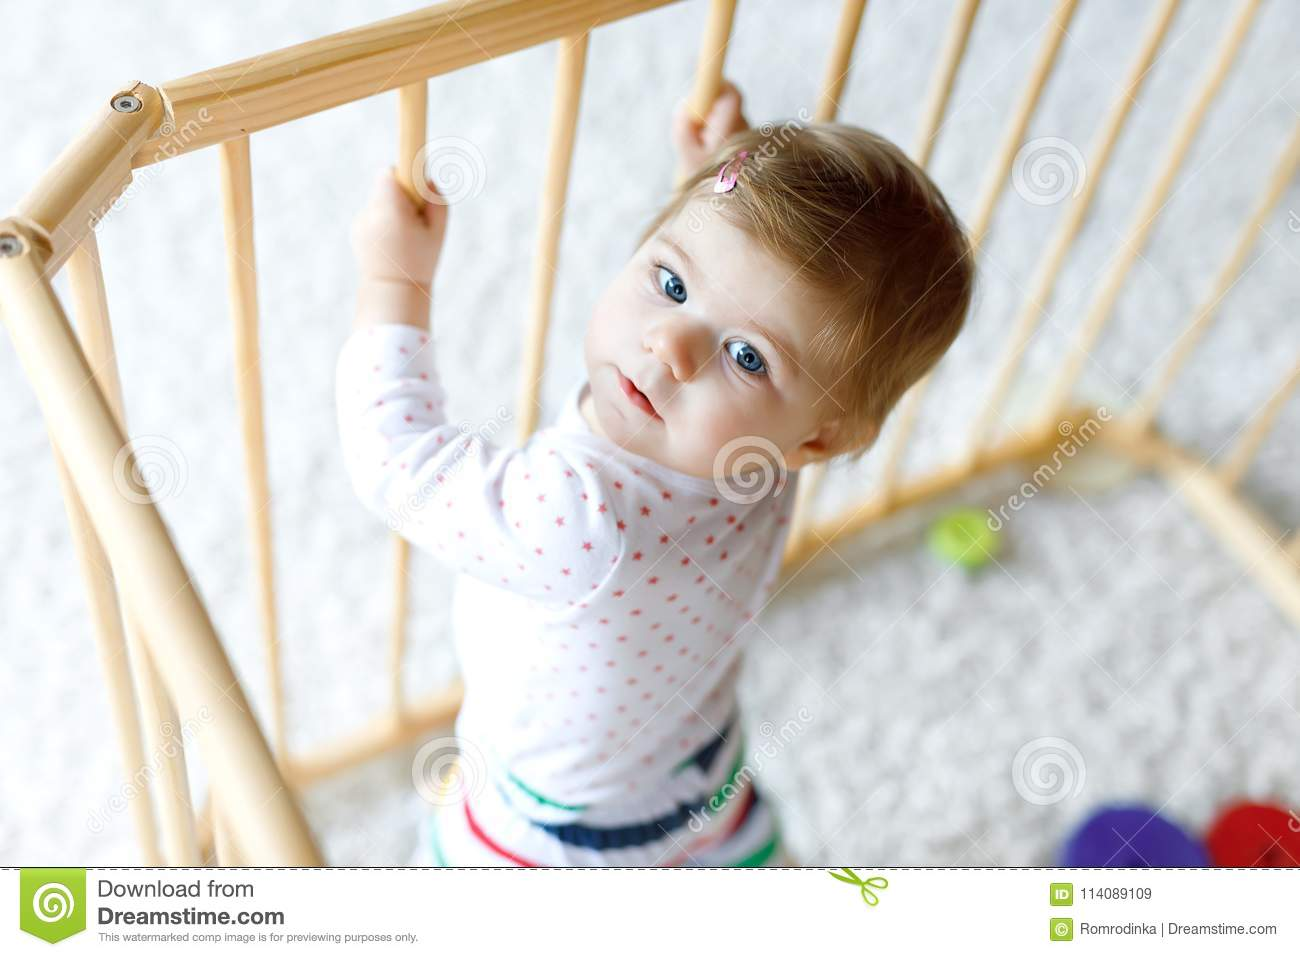 bd0dd9c04 Beautiful little baby girl standing inside playpen. Cute adorable child  playing with colorful toy